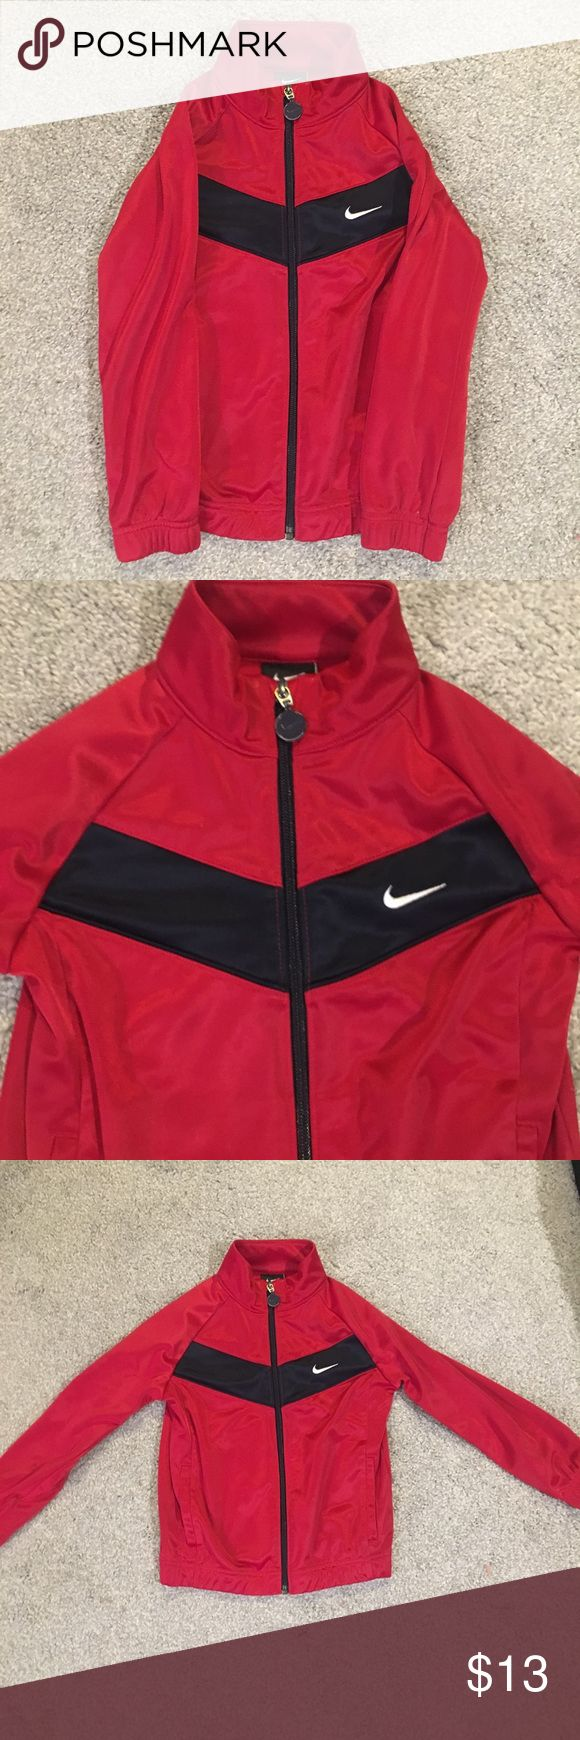 Little Boys' Nike Jacket Red Nike zip up jacket with a light fleece lining. Black stripe across front and back. EUC Nike Jackets & Coats